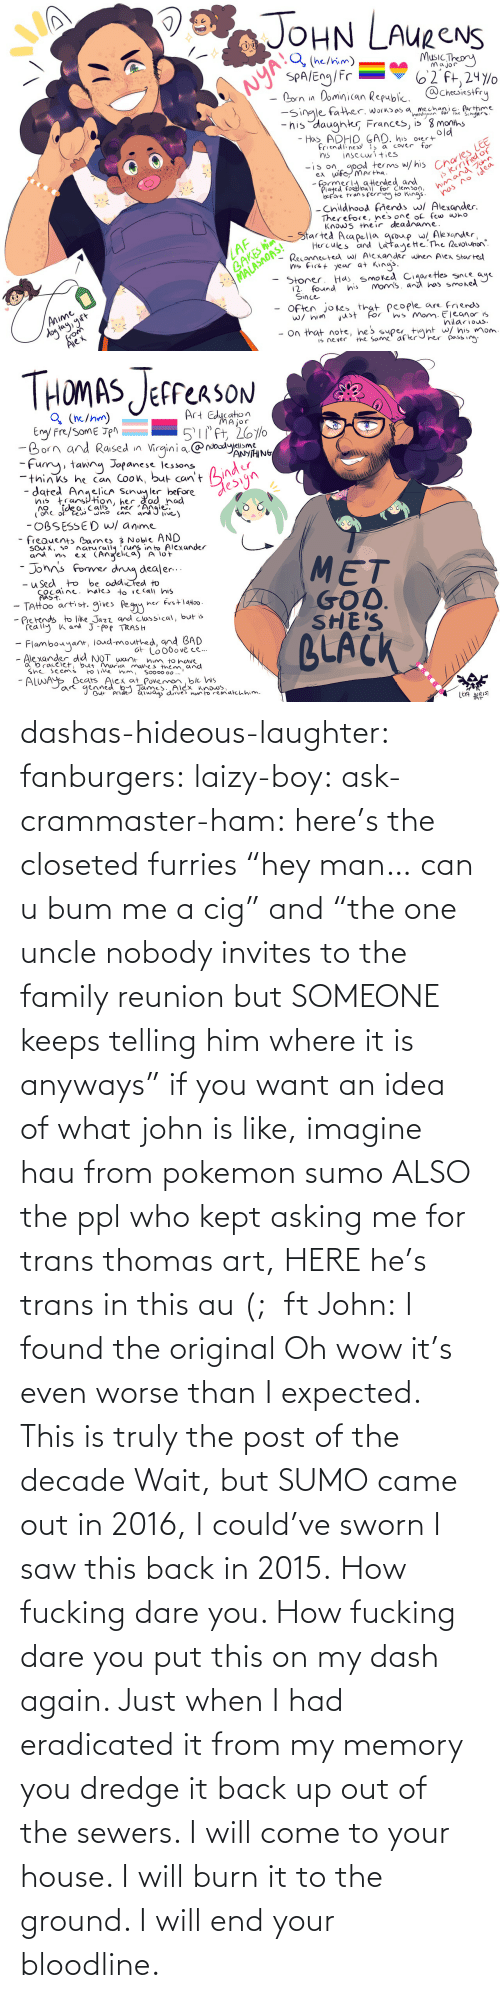 "dash: dashas-hideous-laughter:  fanburgers:   laizy-boy:   ask-crammaster-ham:   here's the closeted furries ""hey man… can u bum me a cig"" and ""the one uncle nobody invites to the family reunion but SOMEONE keeps telling him where it is anyways""   if you want an idea of what john is like, imagine hau from pokemon sumo ALSO the ppl who kept asking me for trans thomas art, HERE he's trans in this au (;  ft John:    I found the original     Oh wow it's even worse than I expected. This is truly the post of the decade    Wait, but SUMO came out in 2016, I could've sworn I saw this back in 2015.    How fucking dare you. How fucking dare you put this on my dash again. Just when I had eradicated it from my memory you dredge it back up out of the sewers. I will come to your house. I will burn it to the ground. I will end your bloodline."